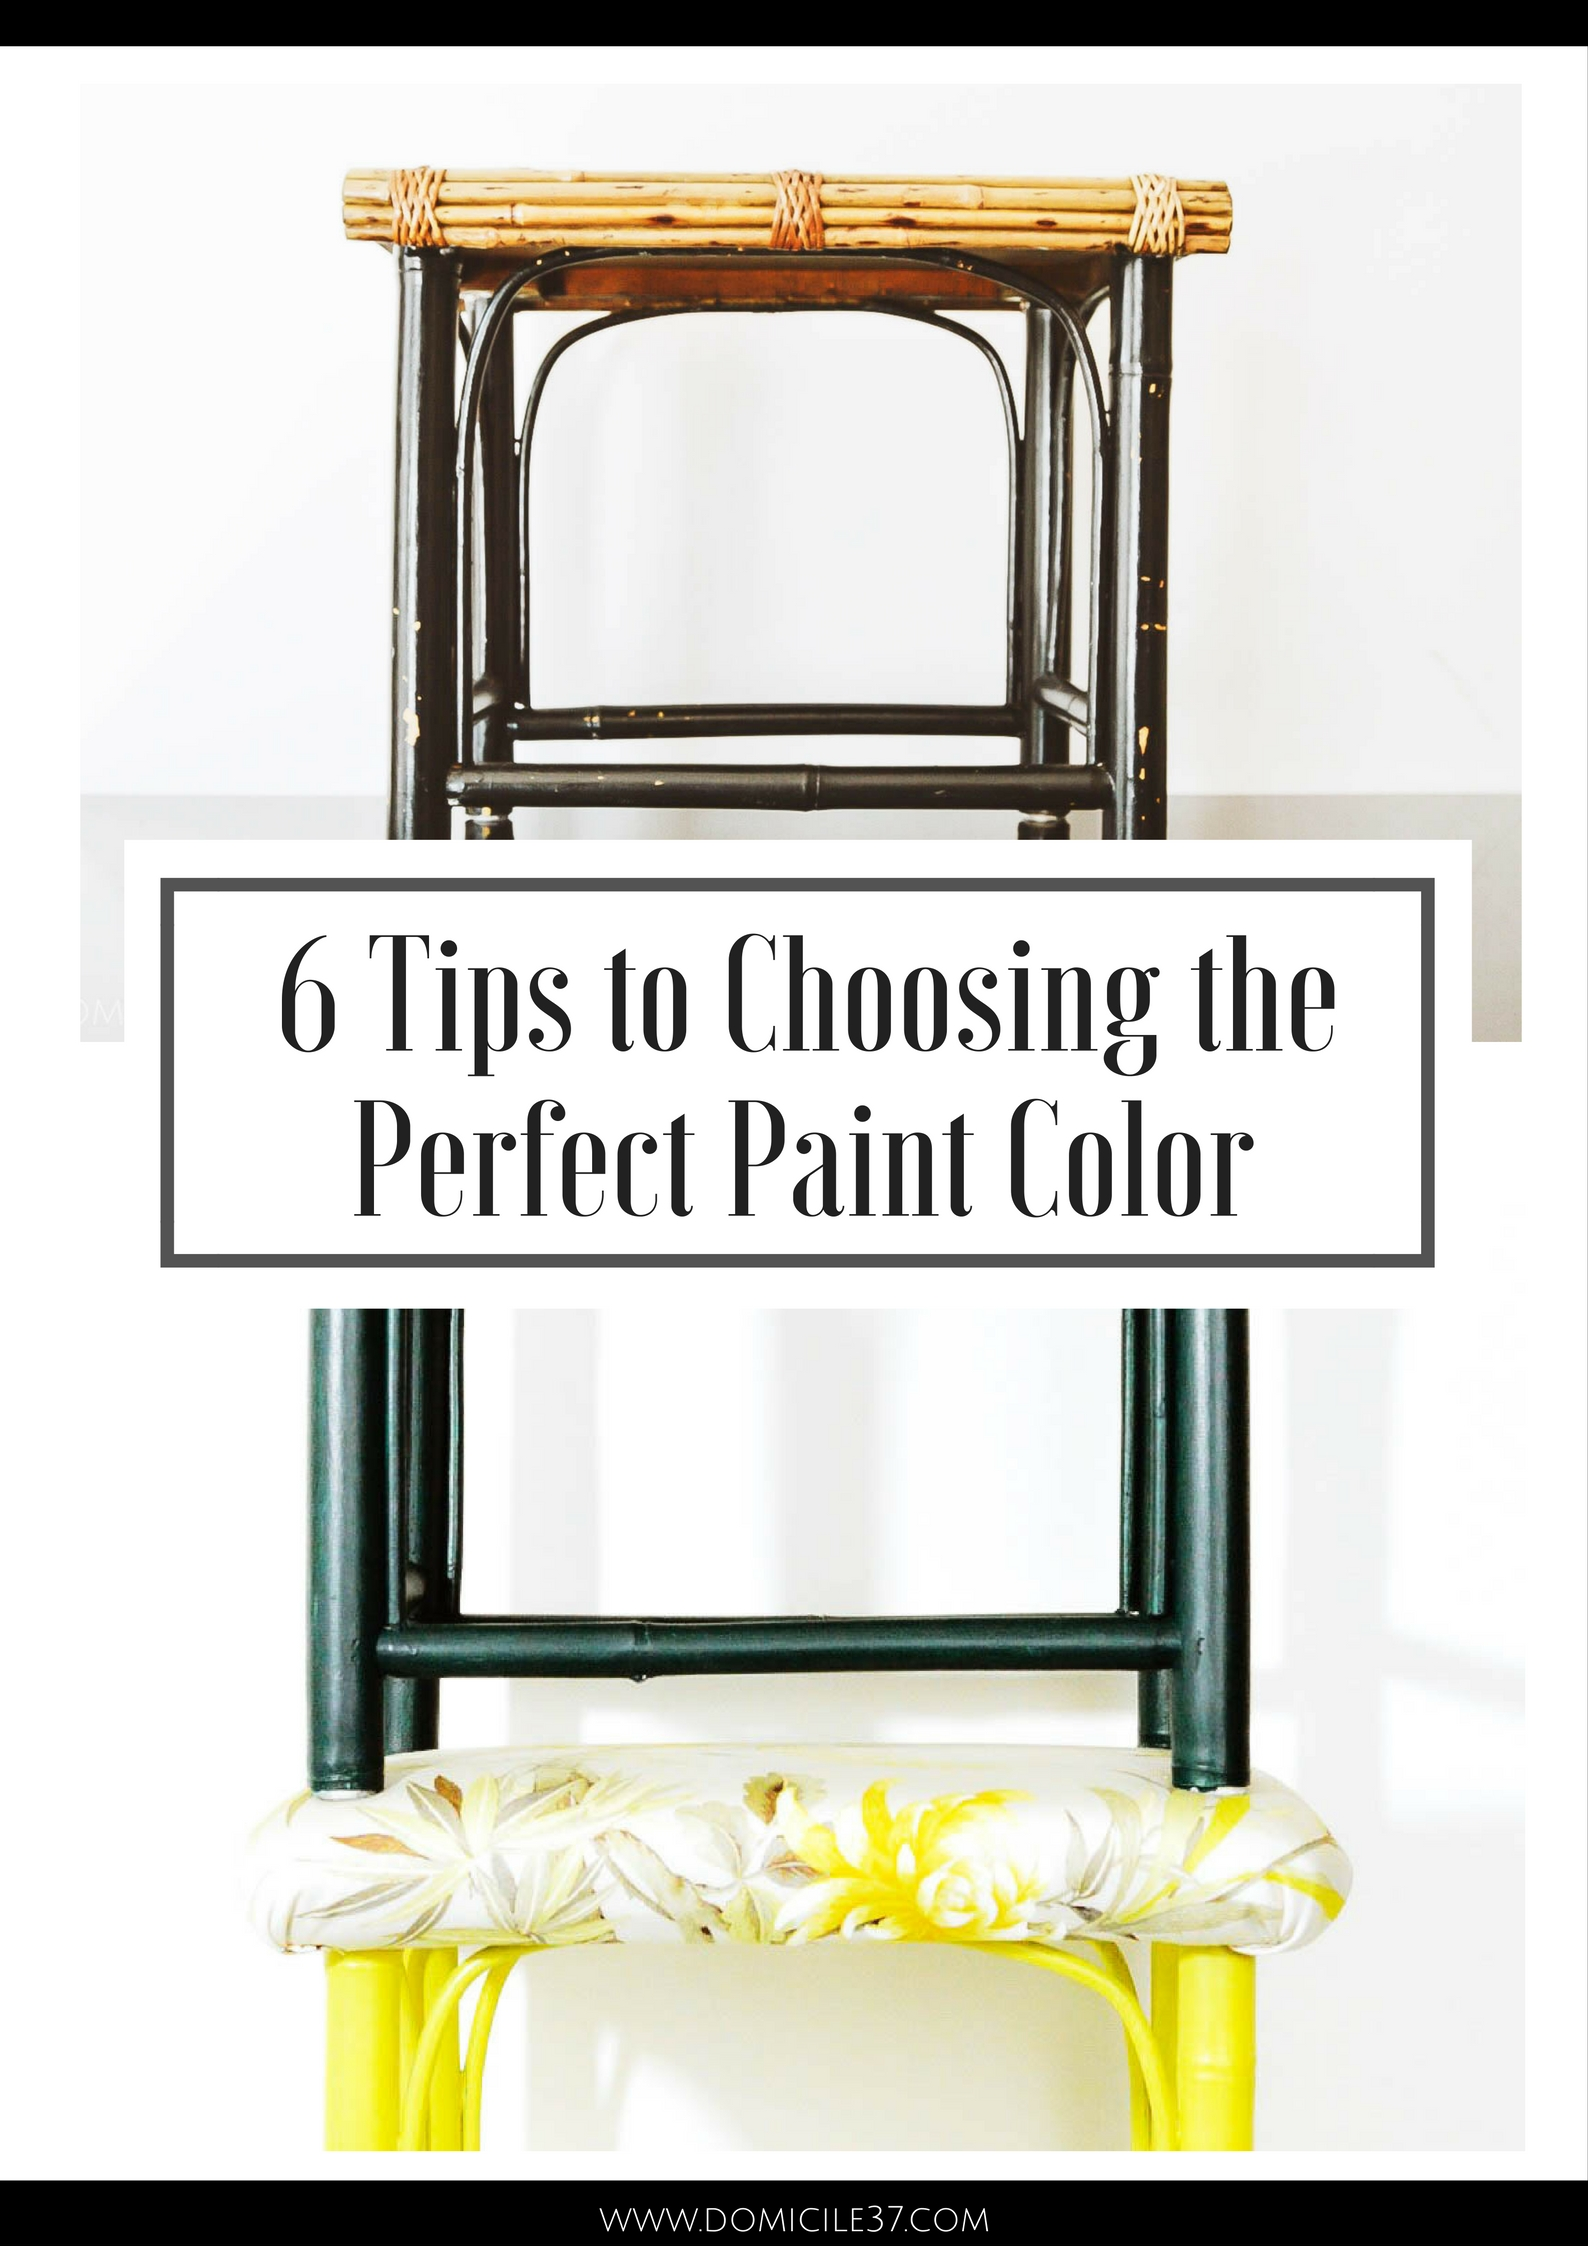 Painting tips | choosing the right color paint to paint furniture | before and after furniture | bamboo furniture